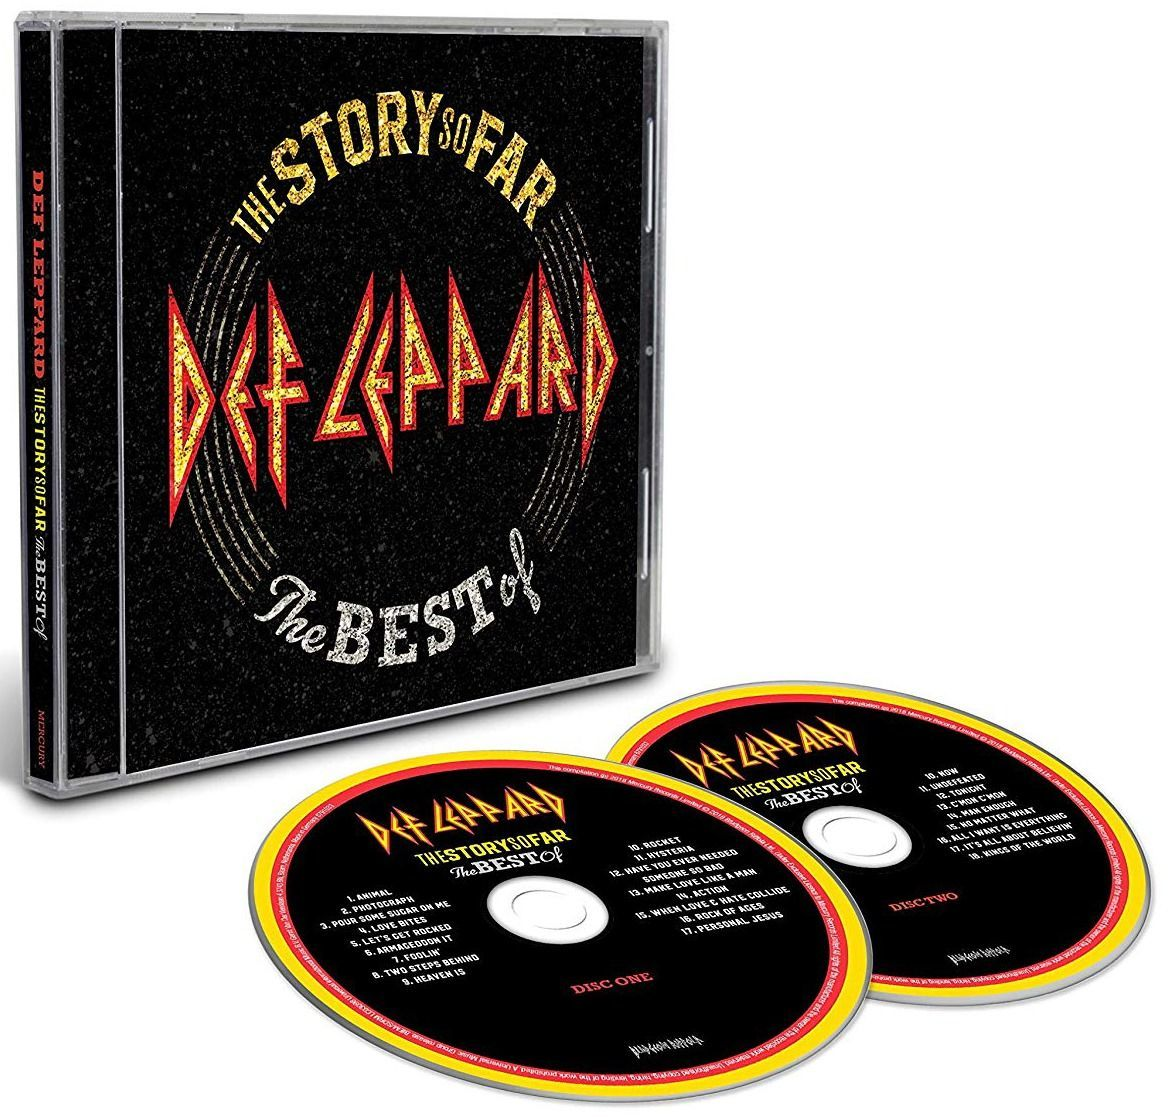 DEF LEPPARD The Story So Far The Best Of Def Leppard (Deluxe Edition) 2CD.jpg